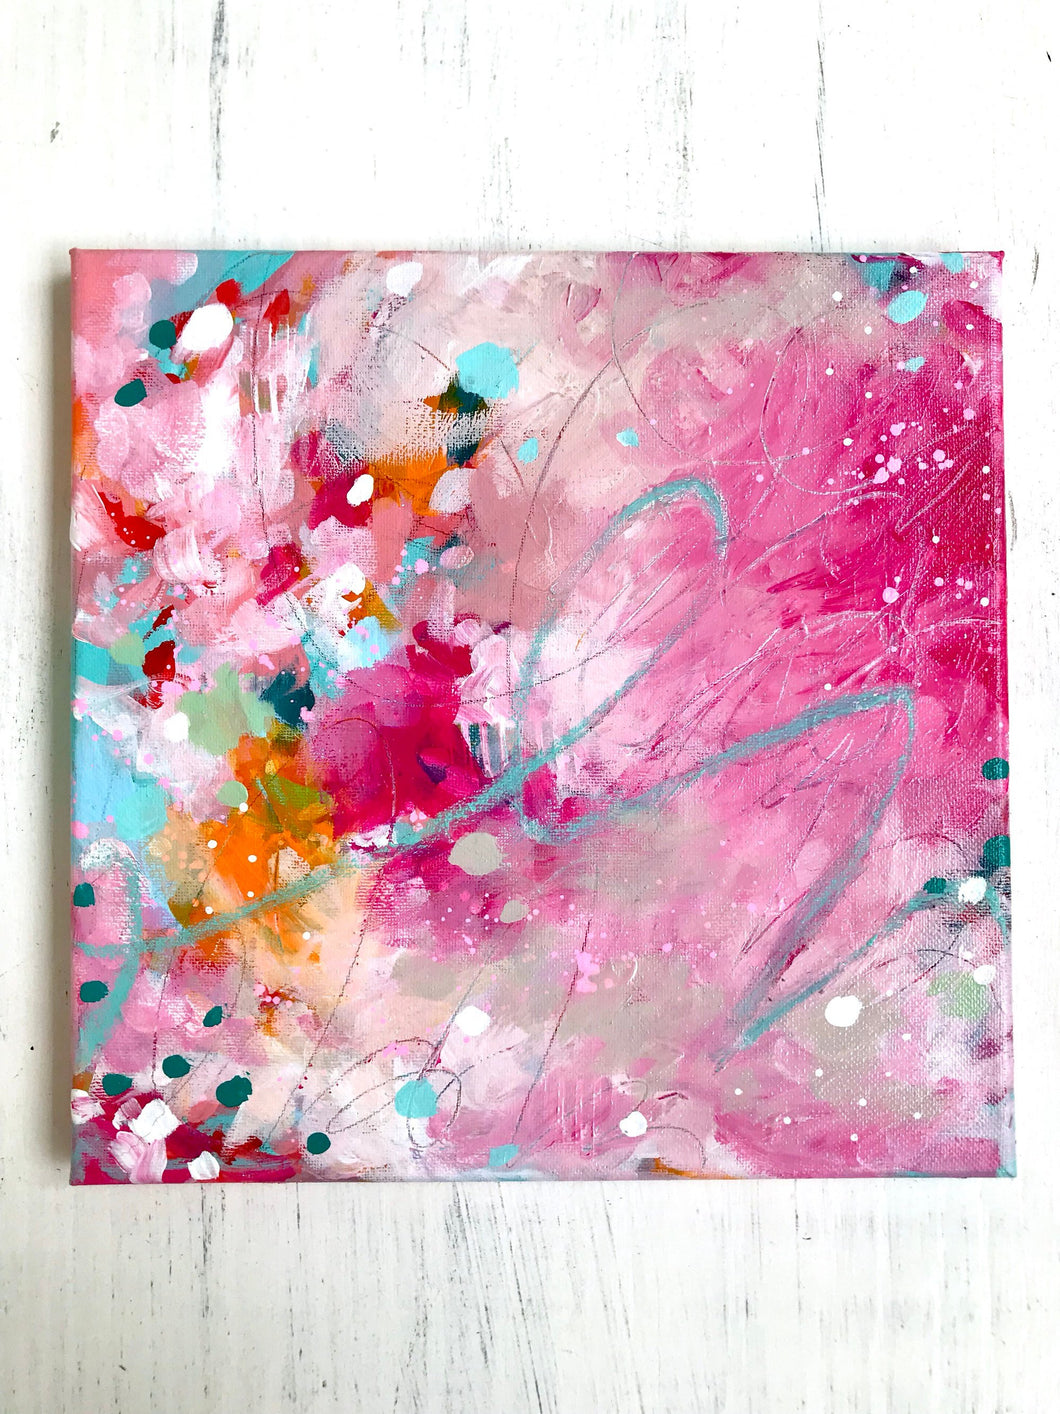 Original Abstract Painting on 10x10 inch Canvas / Acrylic and Pastel /